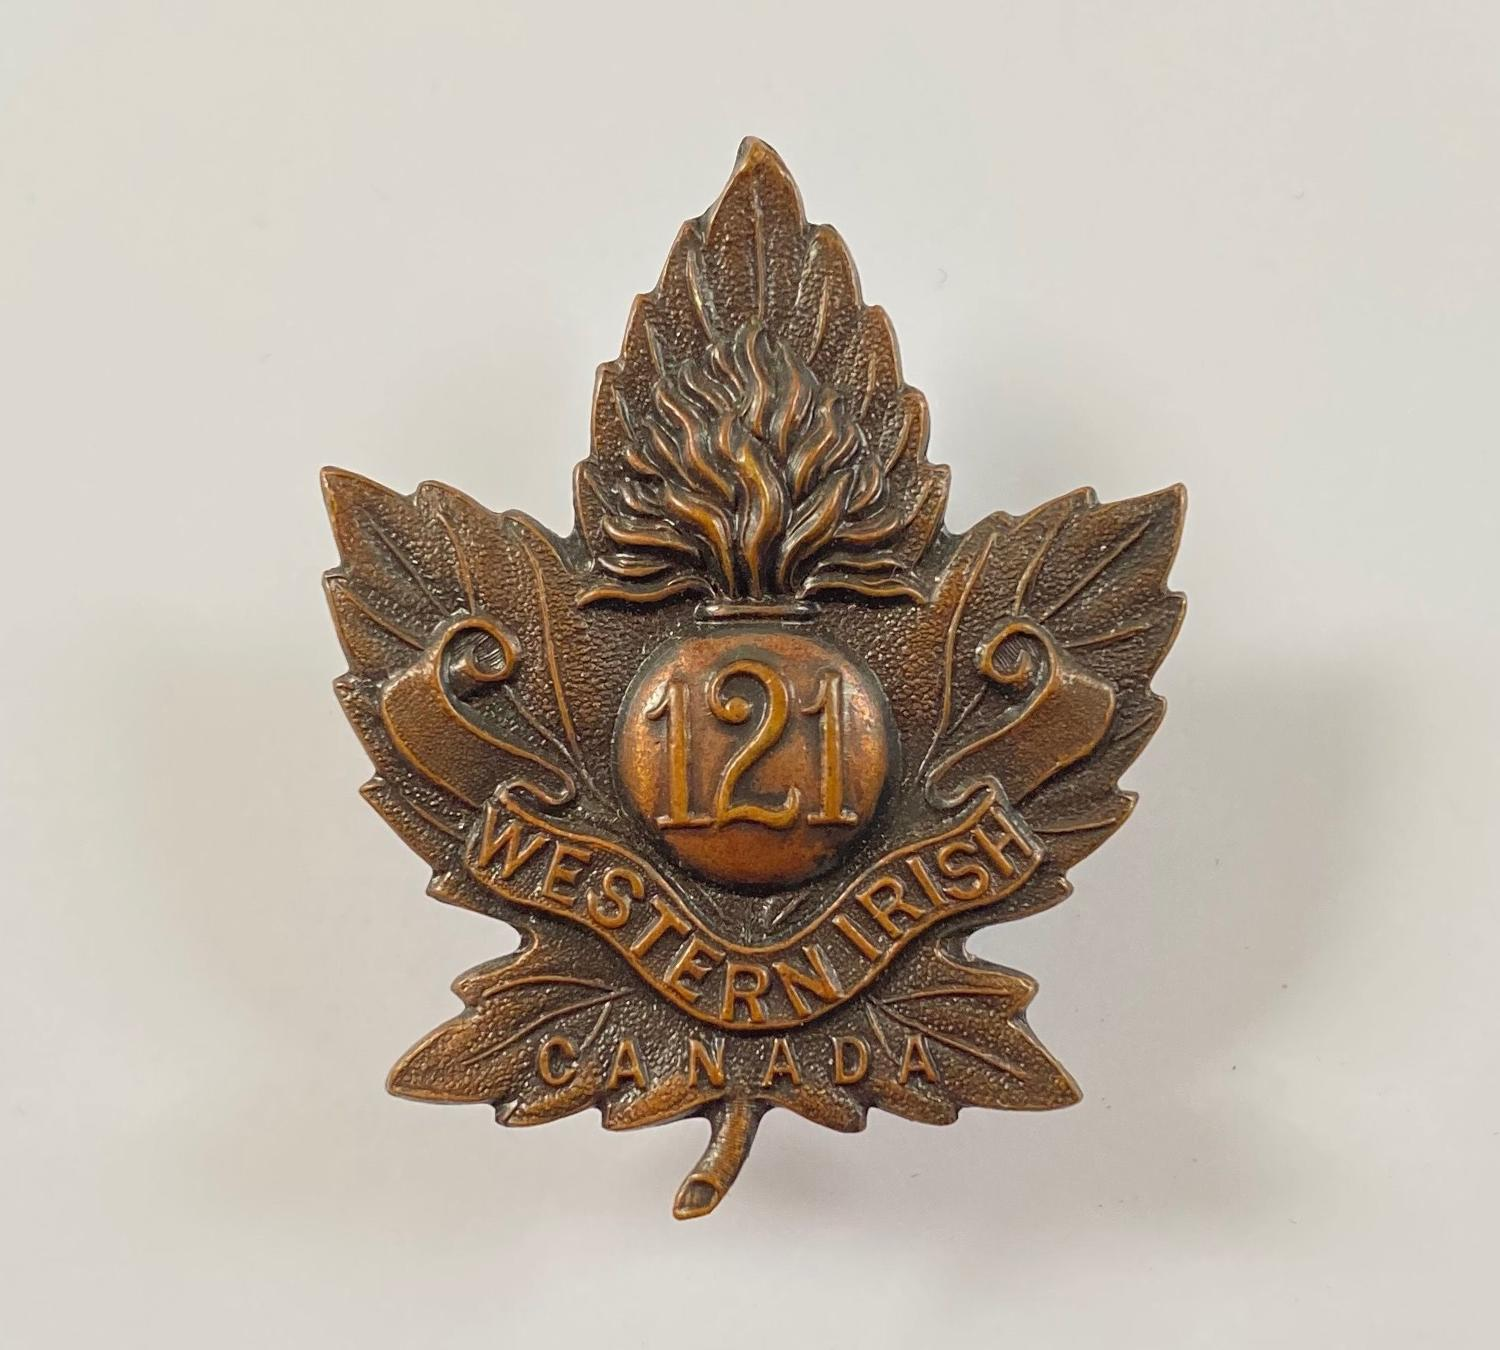 Canadian. 121st (Western Irish) Bn. CEF WW1 bronze cap badge